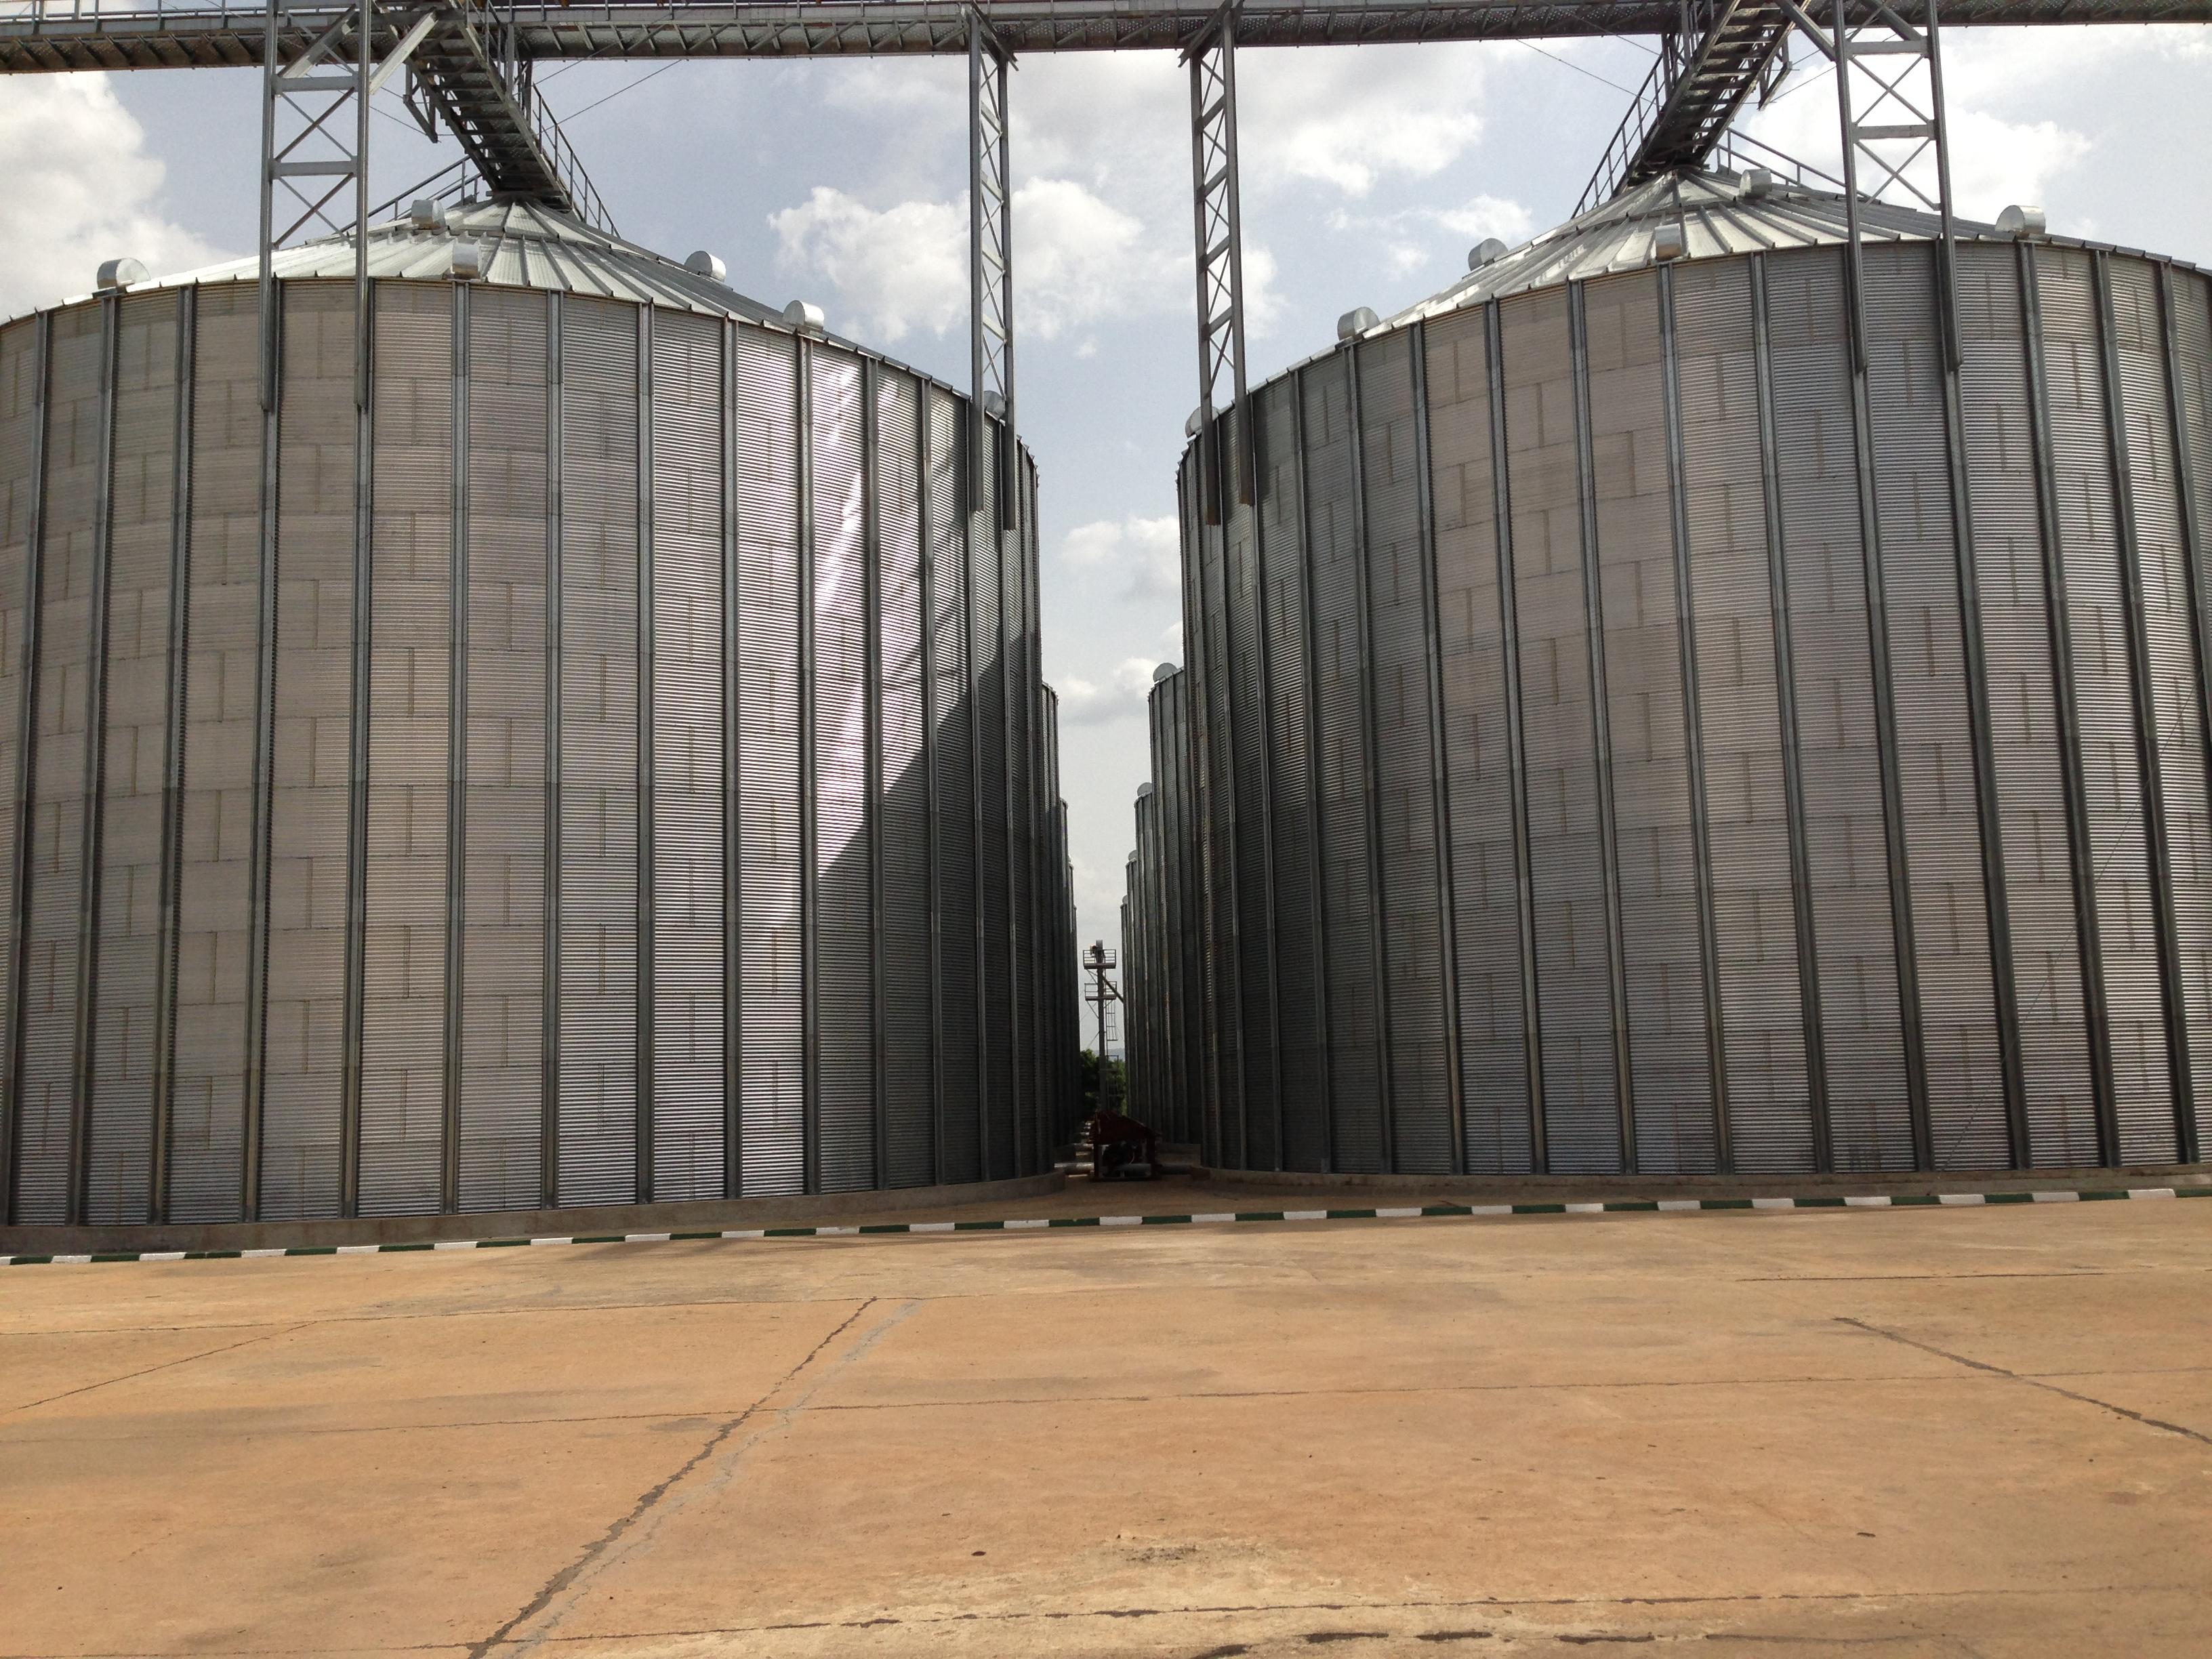 CONCESSION OF GRAIN STORAGE FACILITIES (SILOS)